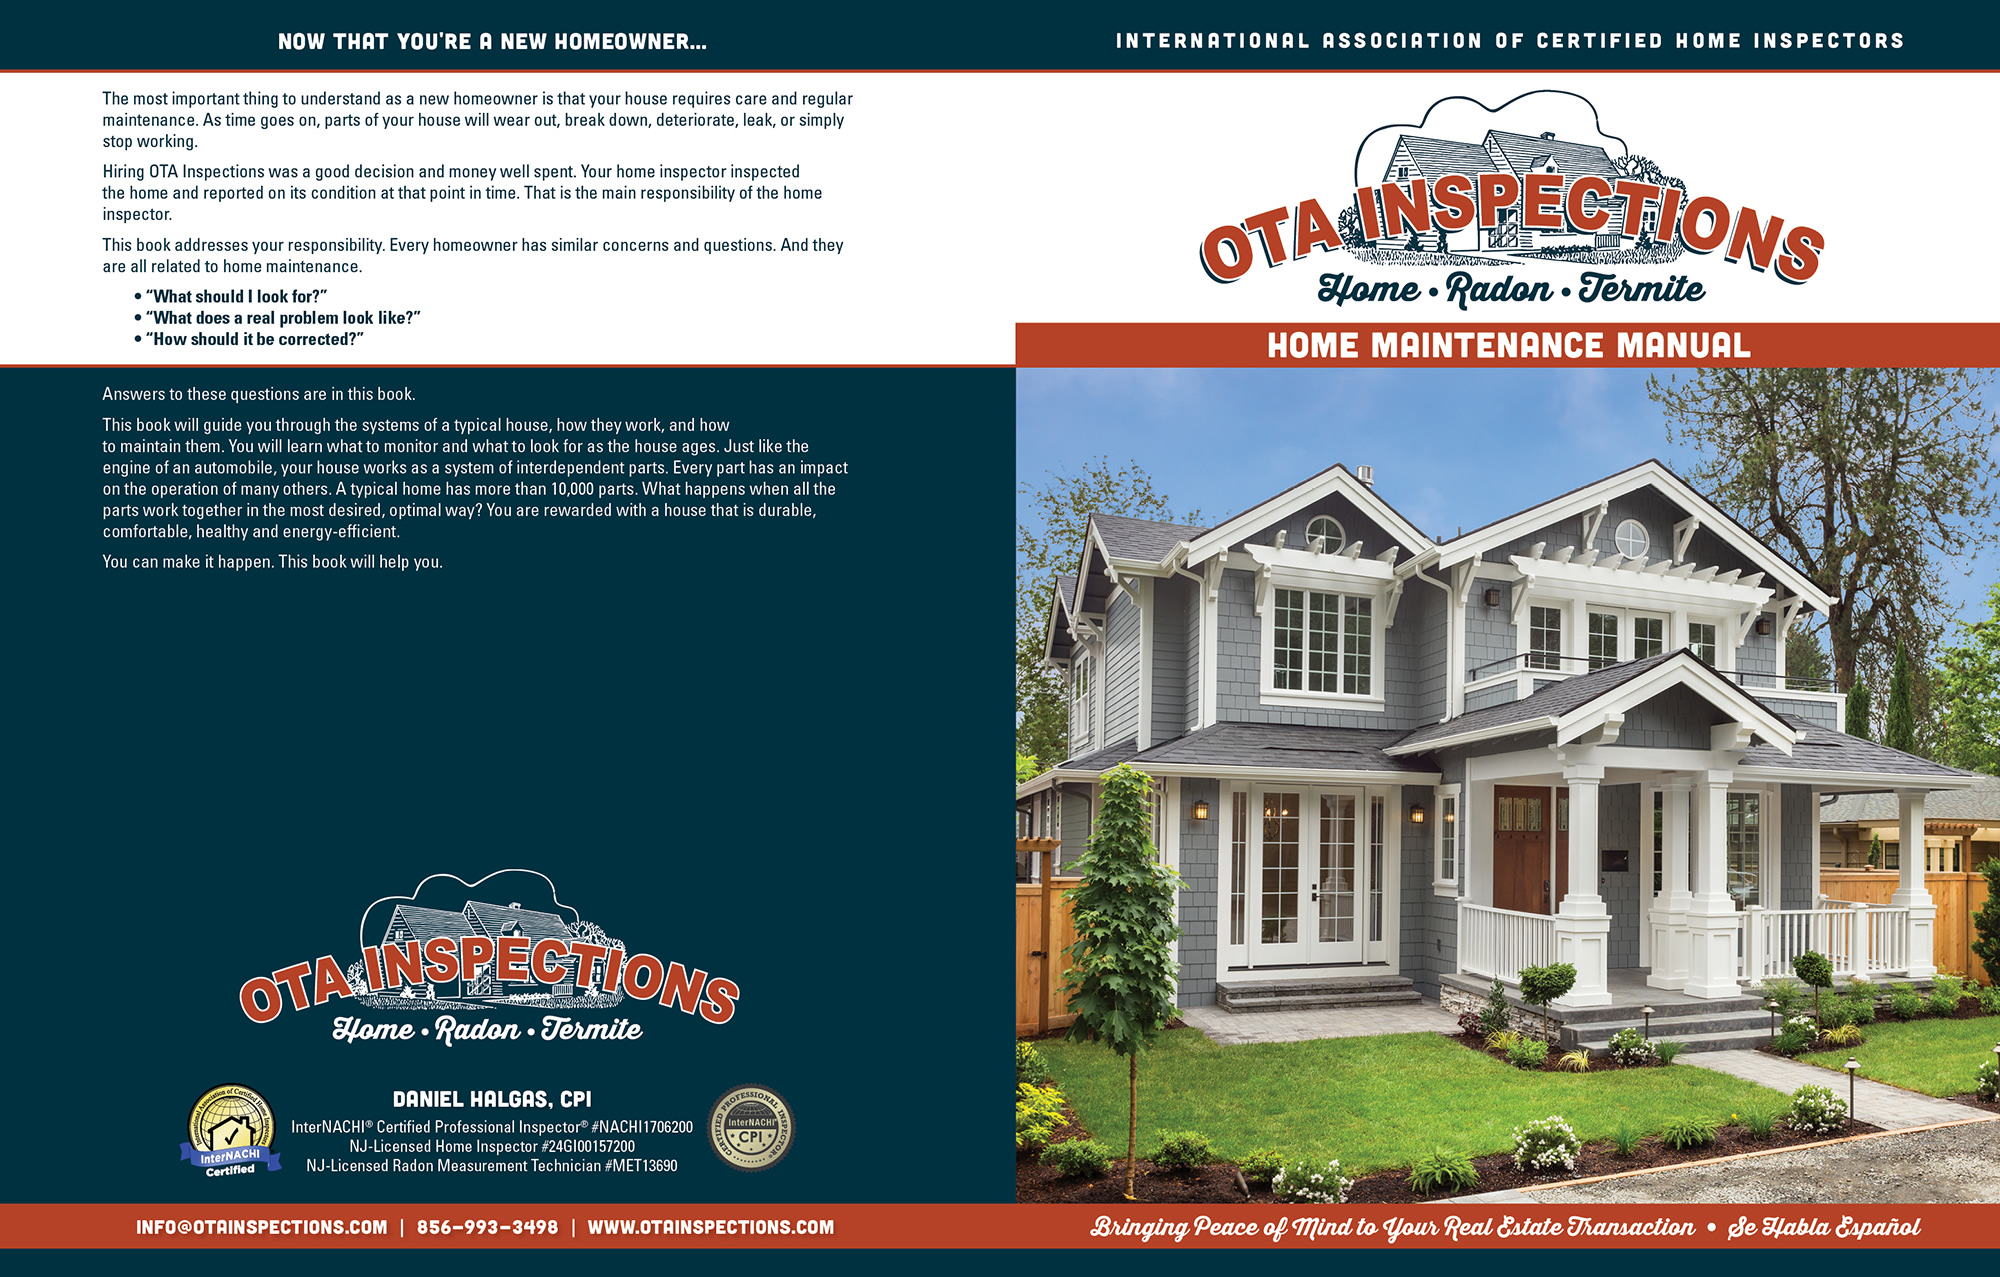 Custom Home Maintenance Book for OTA Inspections